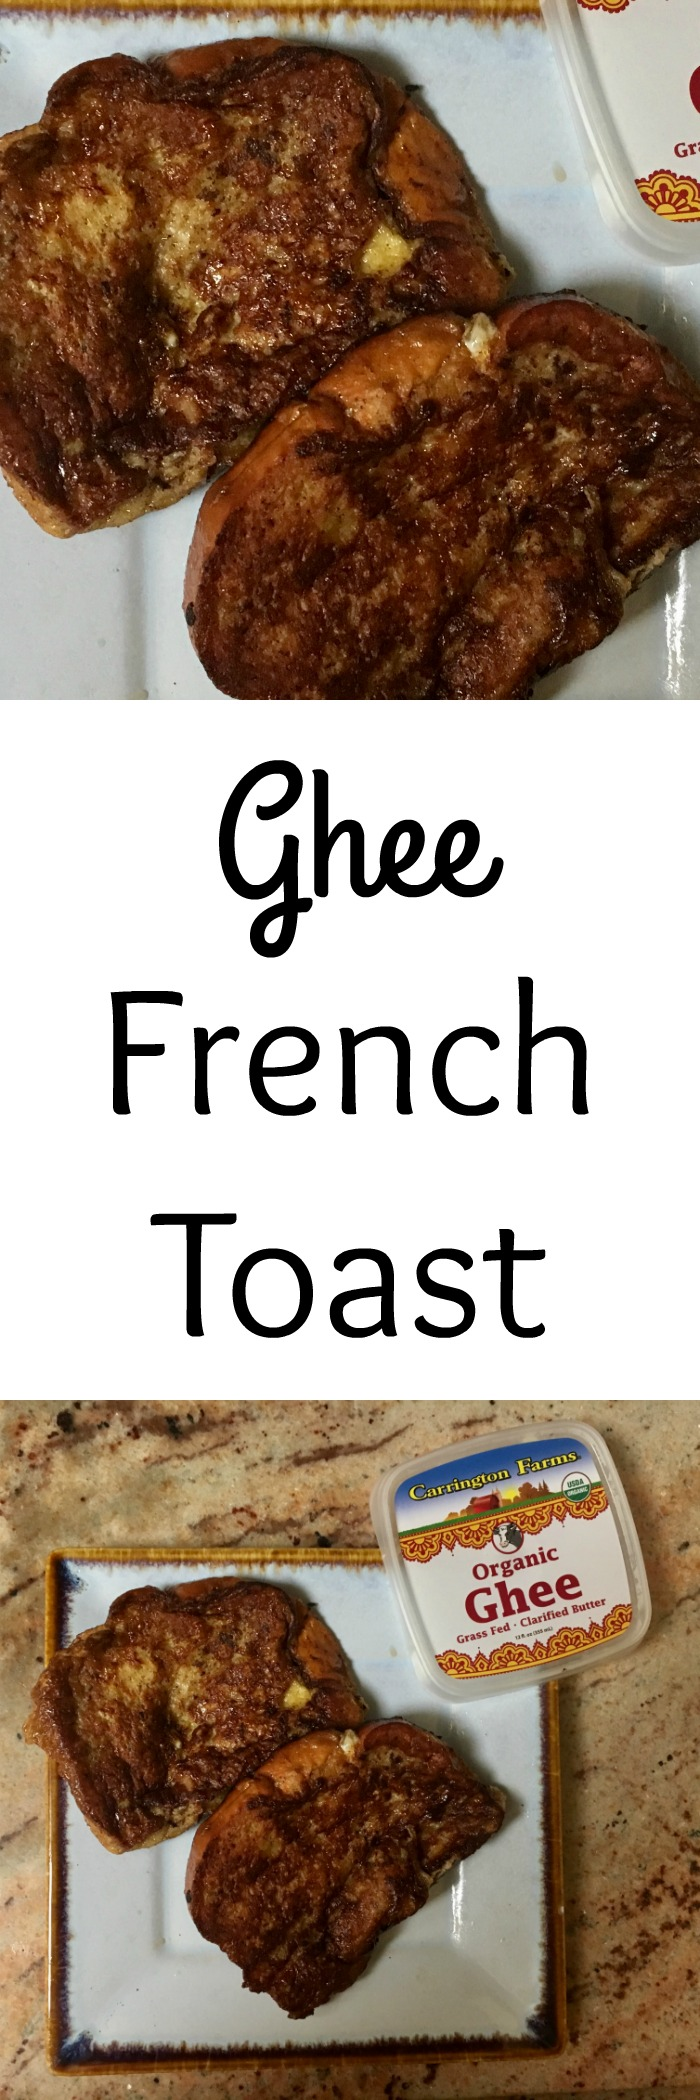 Looking for a different french toast recipe? This Ghee French Toast is such a delicious recipe to make for mom on Mother's Day